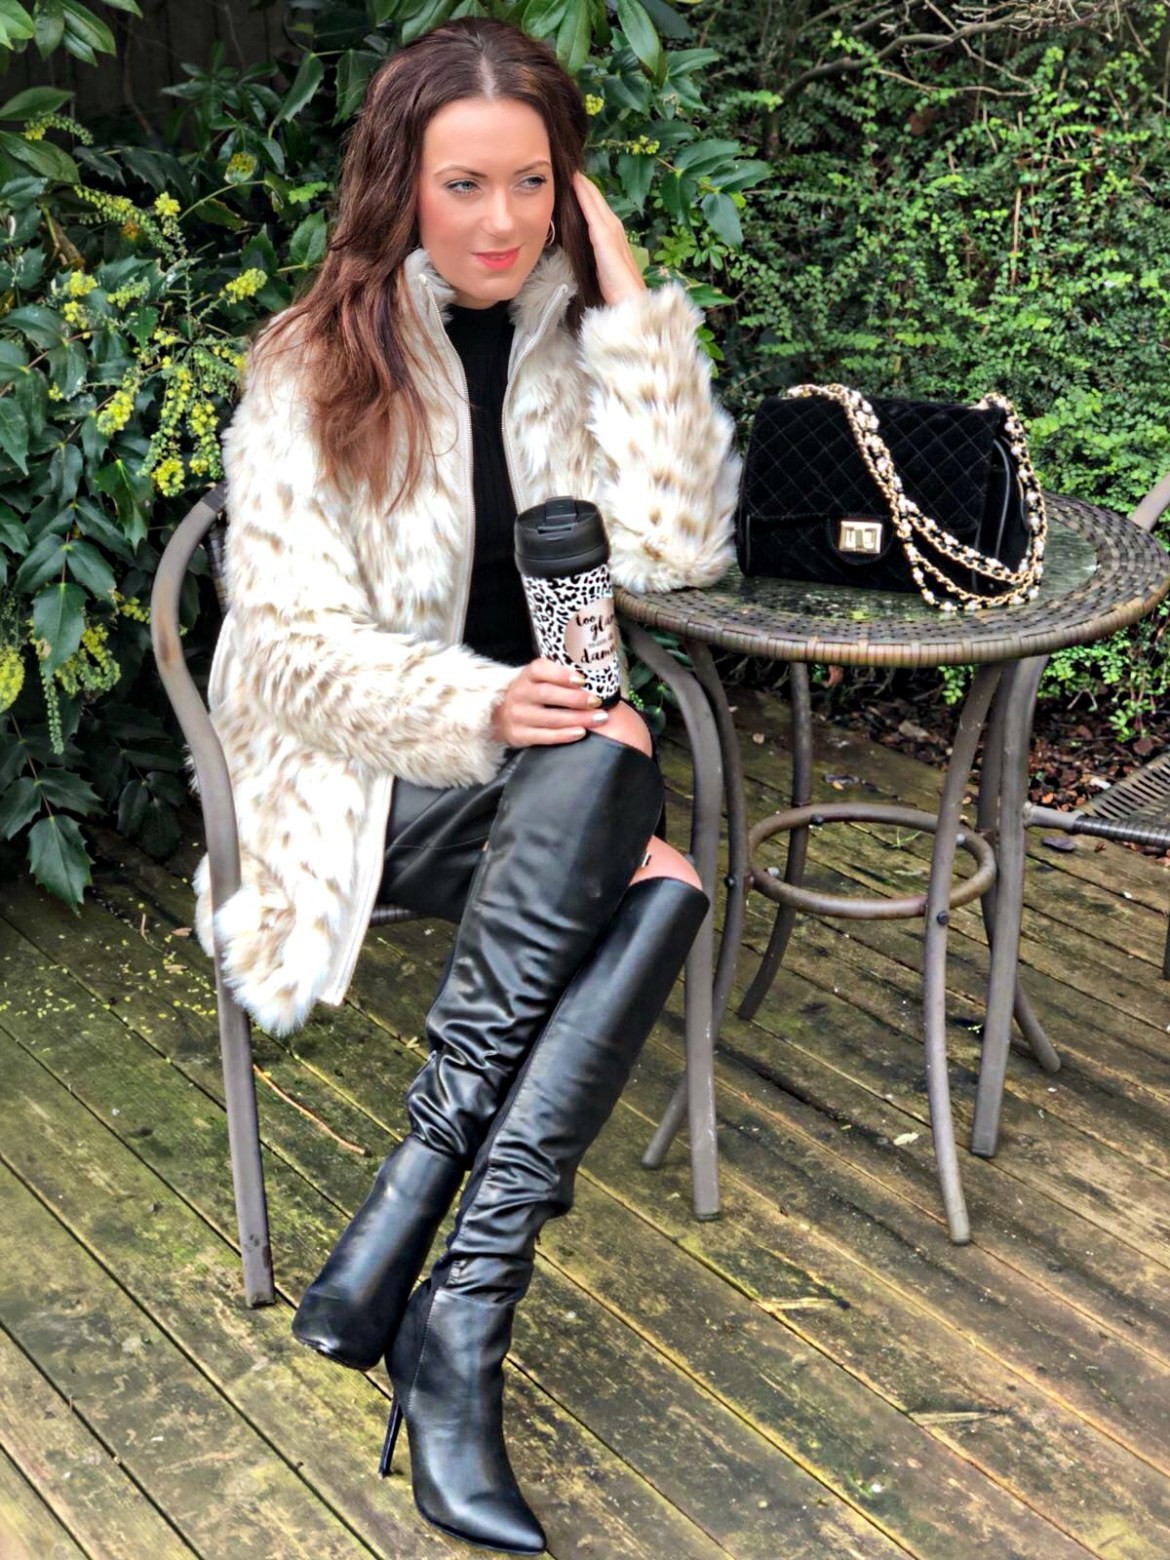 Marc B Quilted Velvet Cross Body | Lost Ink Panelled Knee High Boots | Lipsy Military Button Jumper | Lipsy Faux Fur Belted Coat | Swarovski earrings | Ted Baker gloves